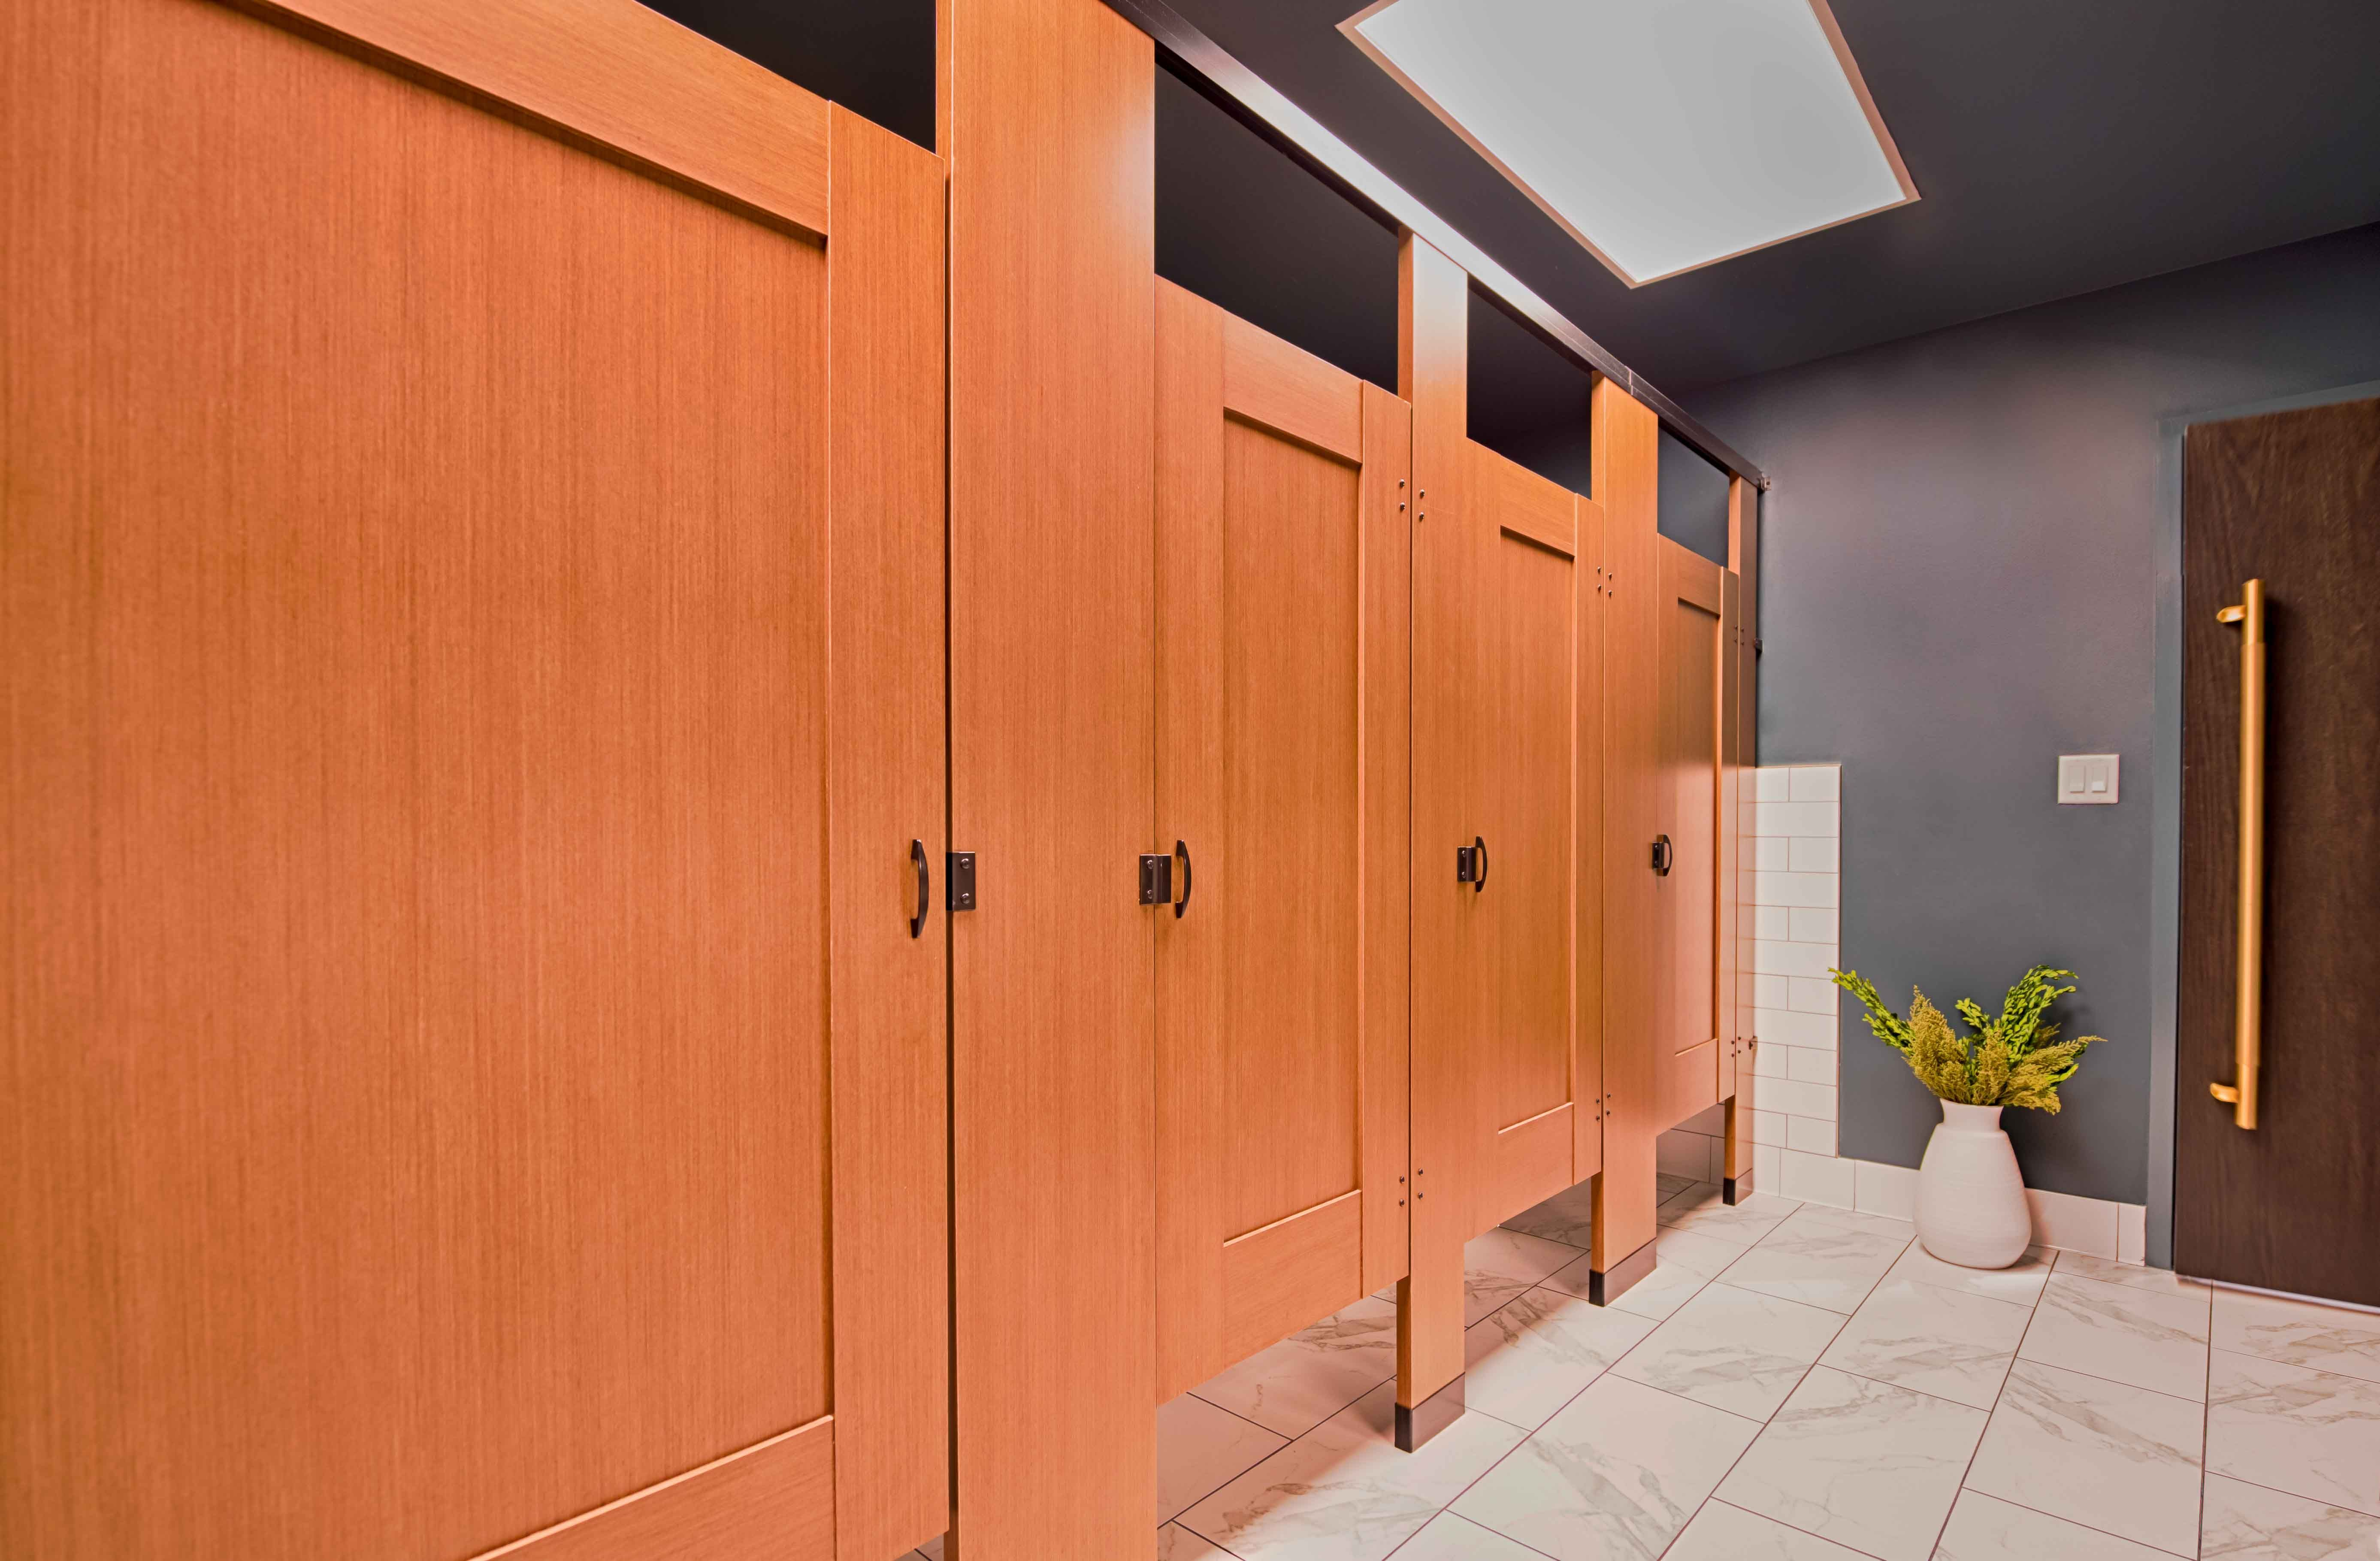 Ironwood Manufacturing Laminate Toilet Partitions And Captured Panel Bathroom Doors Powder Coated Hardware Clean Tradition Bathroom Partitions Bathroom Doors Bathroom Stall